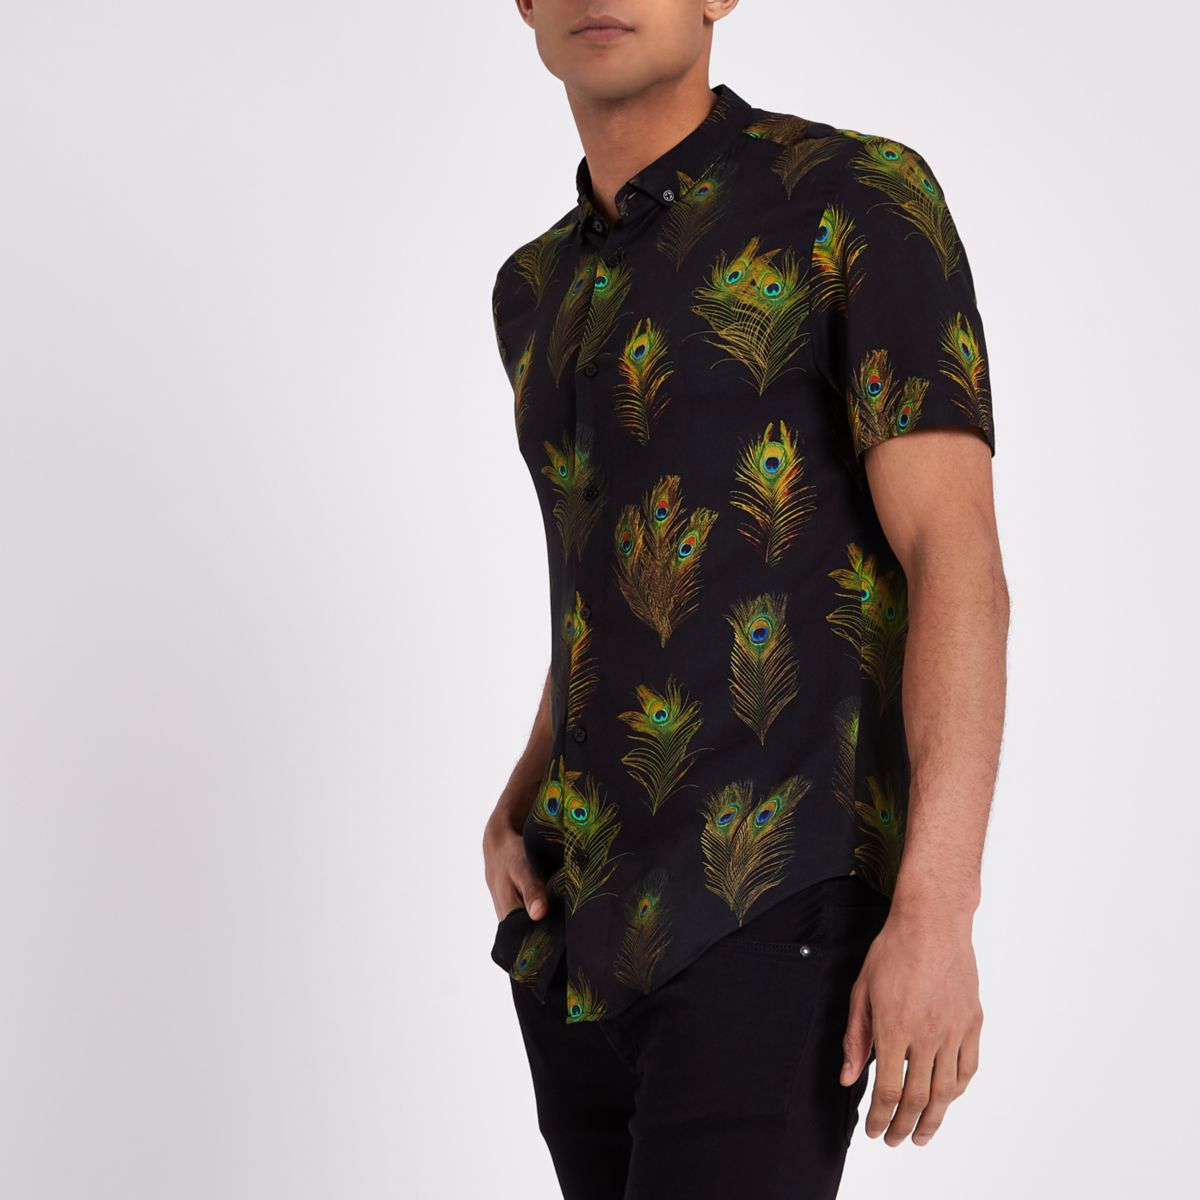 Black peacock short sleeve slim fit shirt